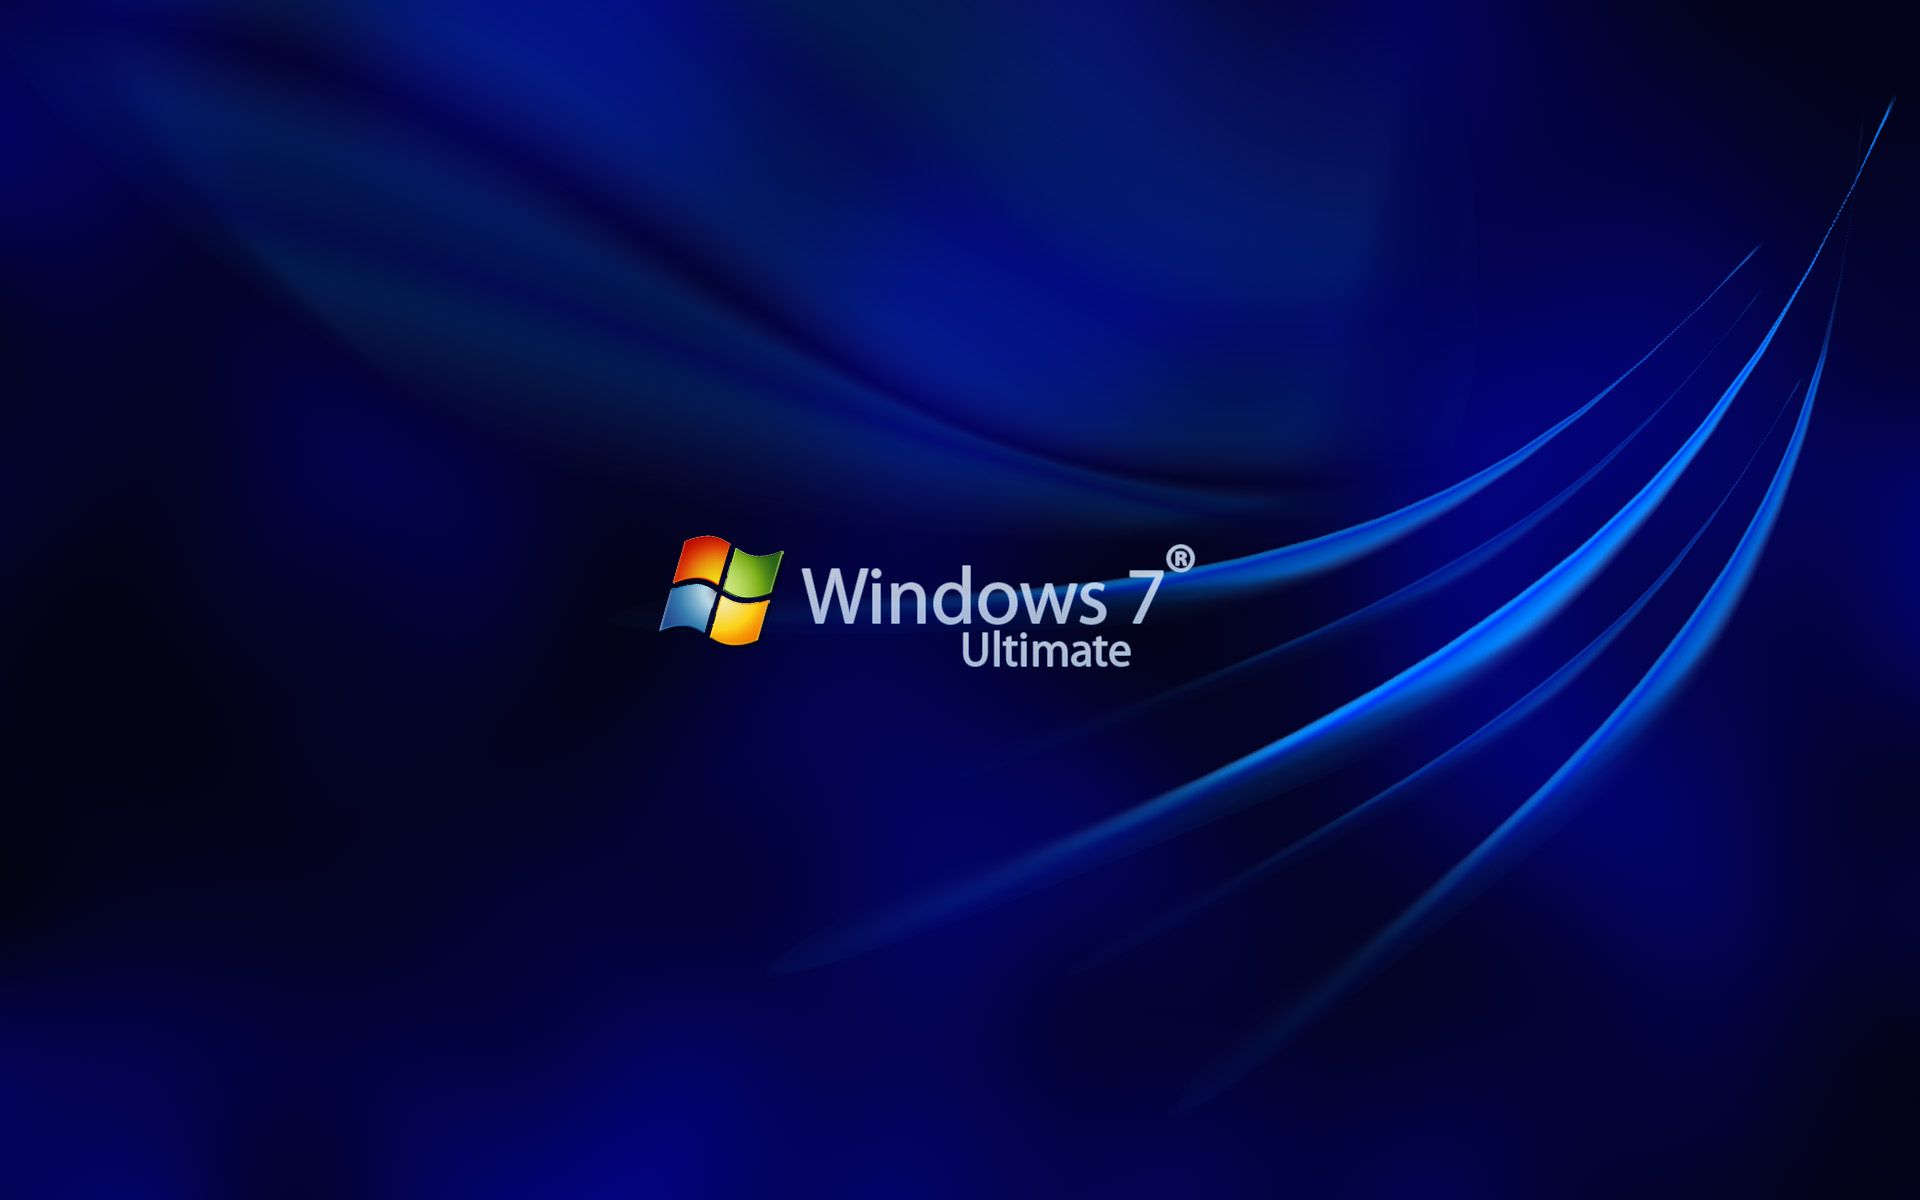 Download Windows 7 Professional Wallpapers Free Stuff Design